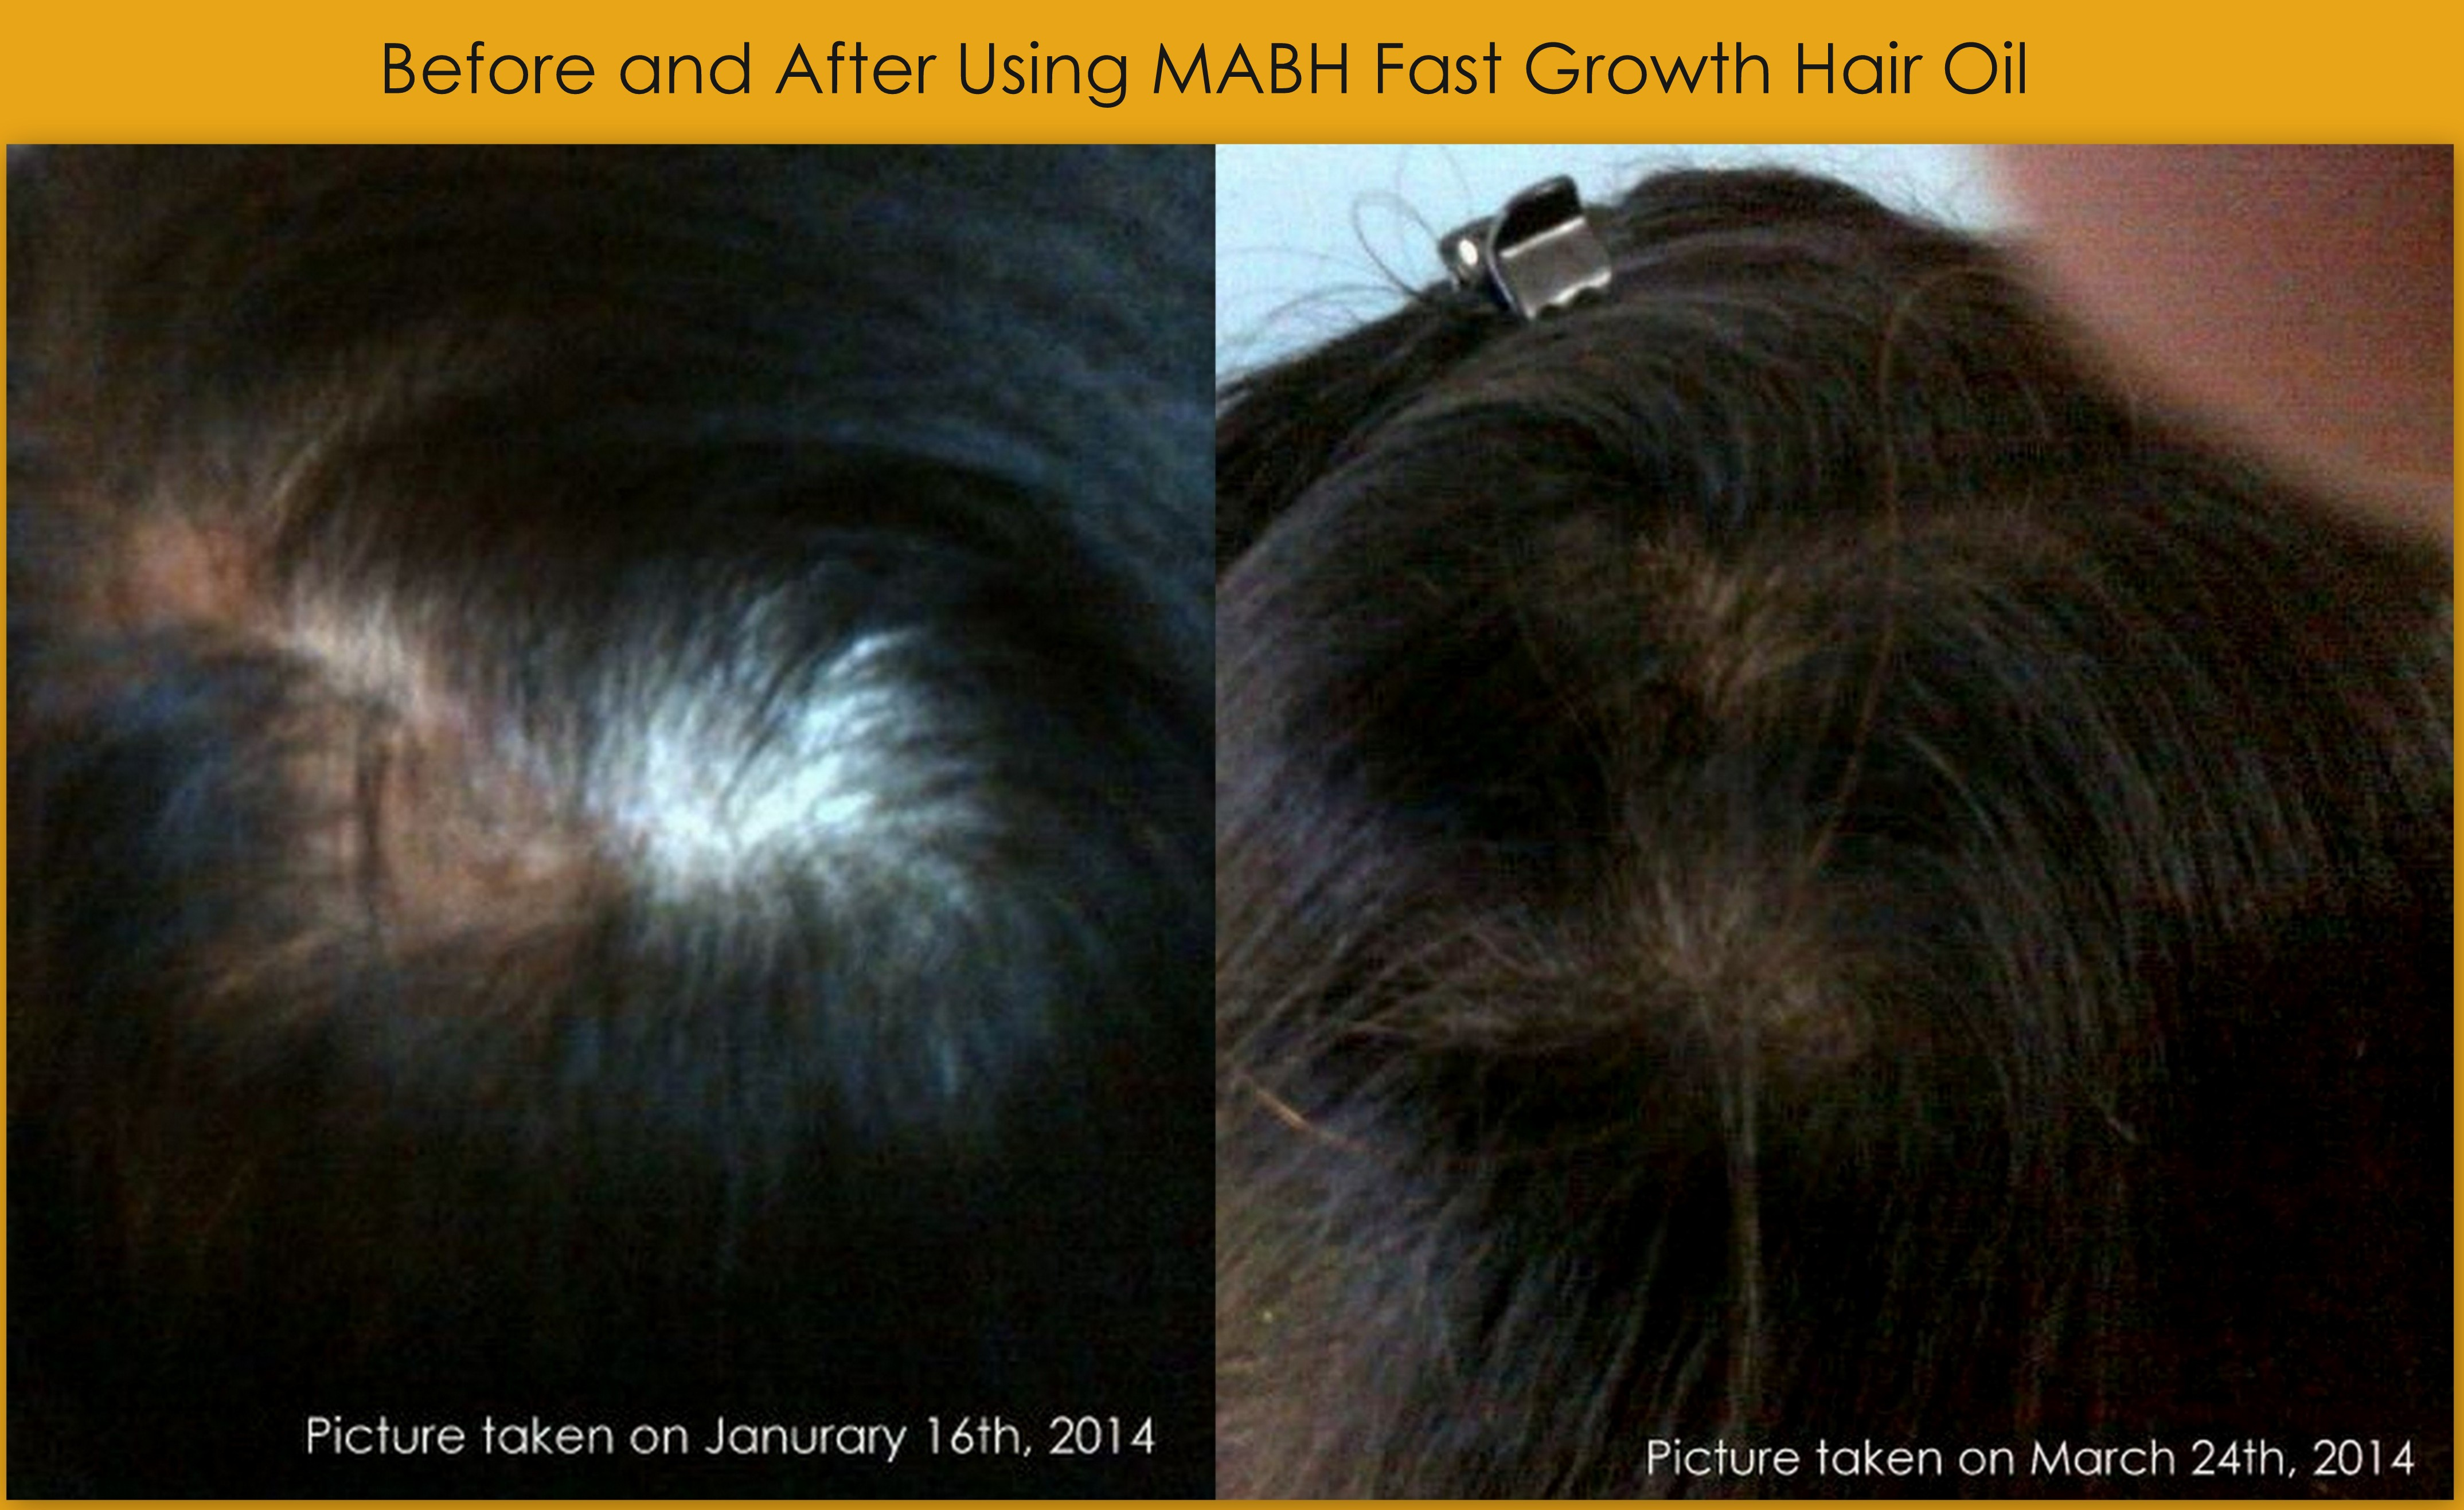 Before After Pictures Anahita S Experience With Mabh Fast Growth Hair Oil